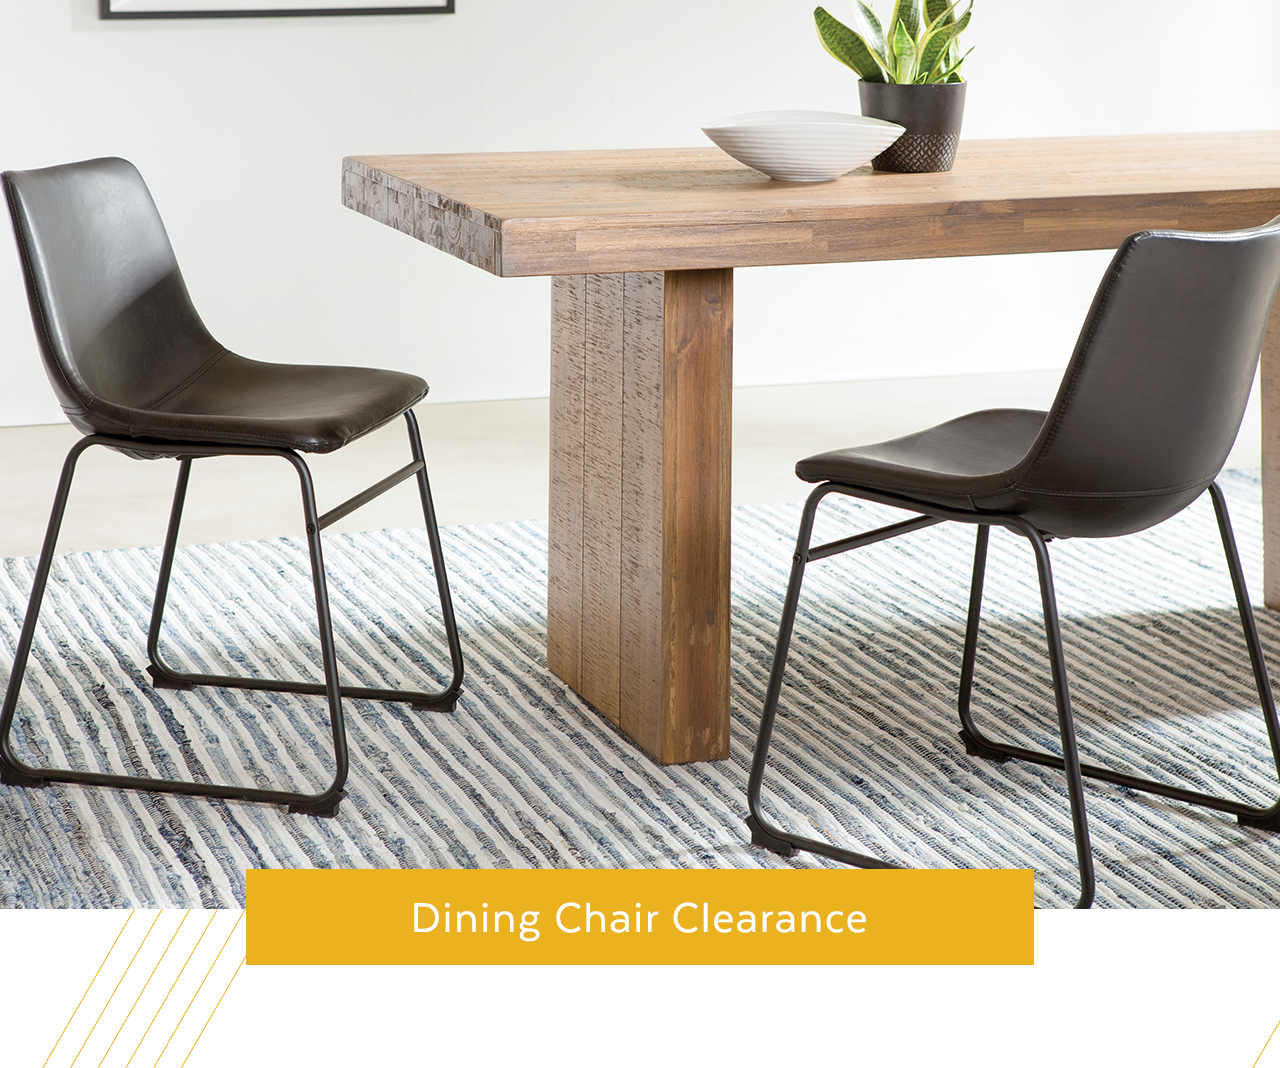 Dining Chair Clearance